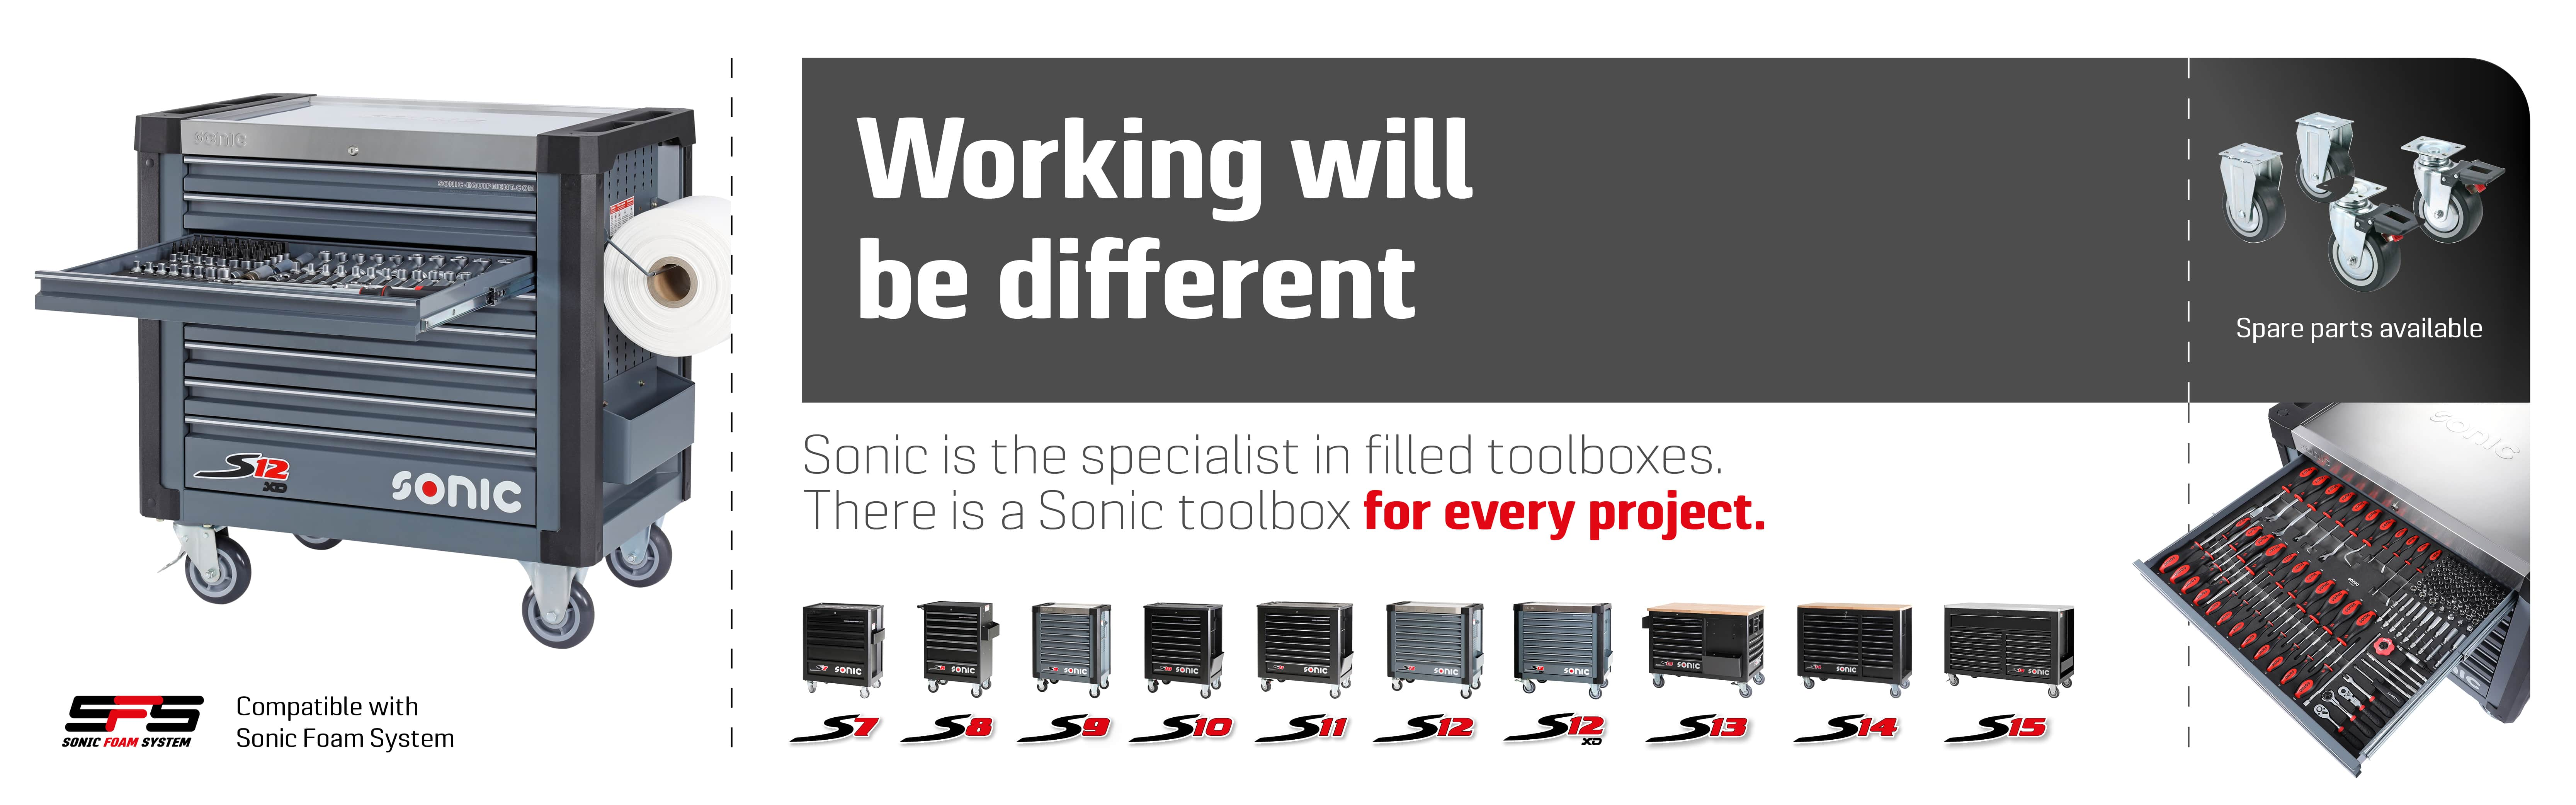 Sonic toolboxes